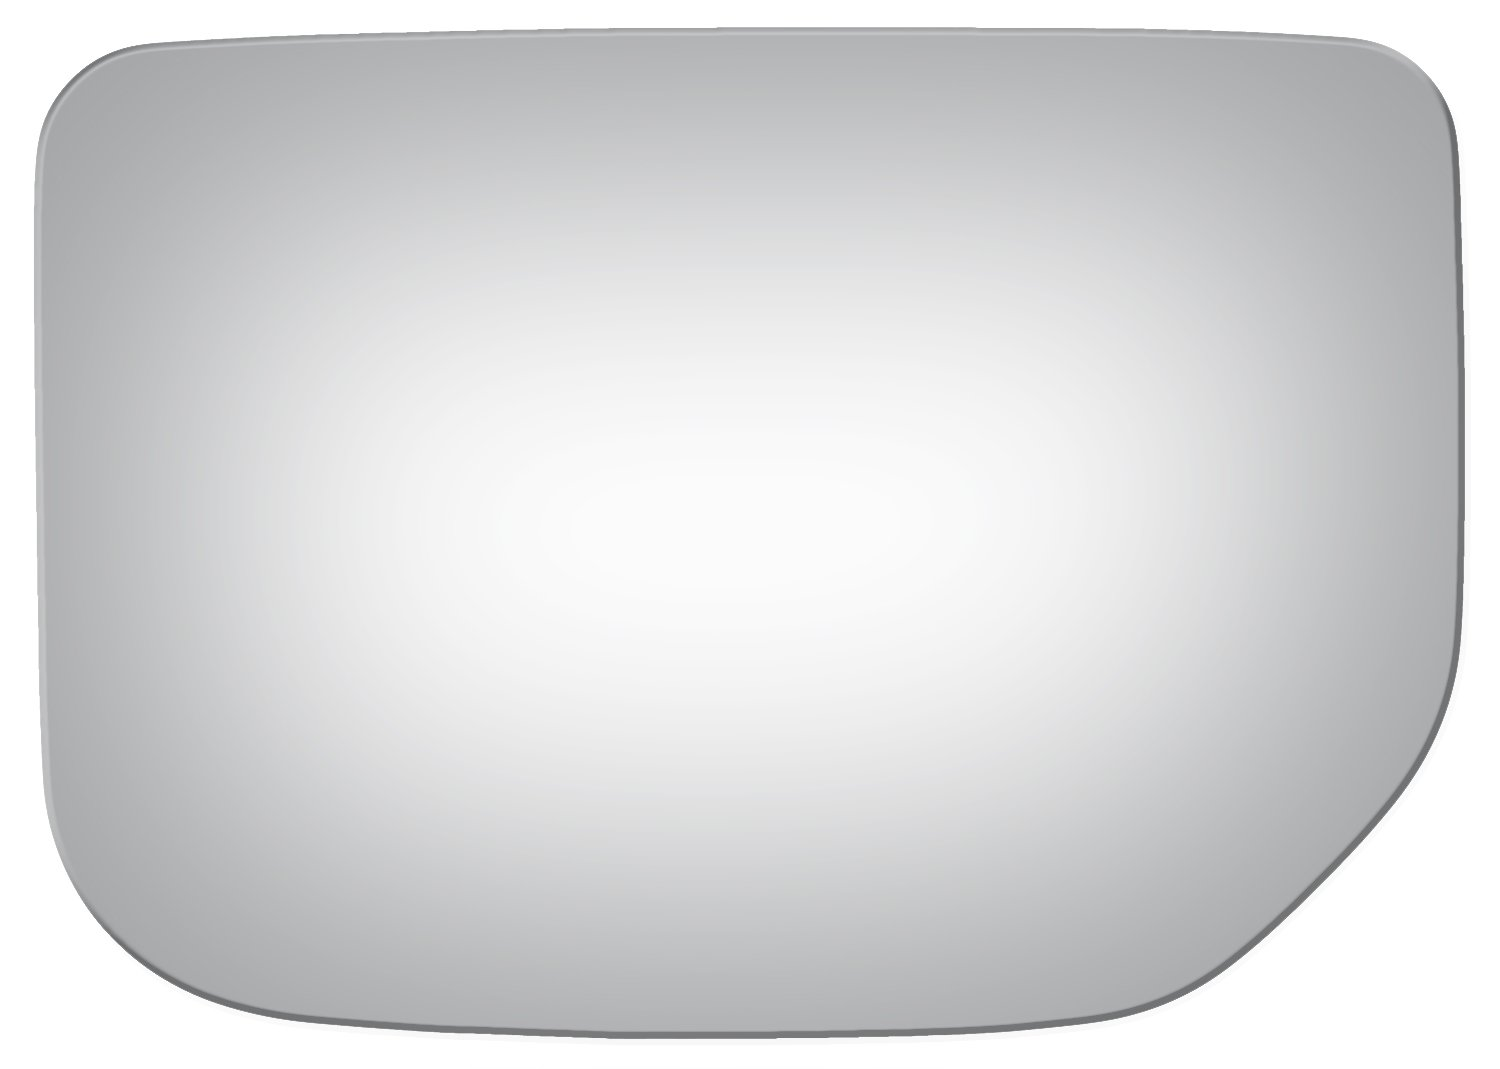 Burco 4131 Flat Driver Side Replacement Mirror Glass for 07-14 Toyota FJ Cruiser 2007, 2008, 2009, 2010, 2011, 2012, 2013, 2014